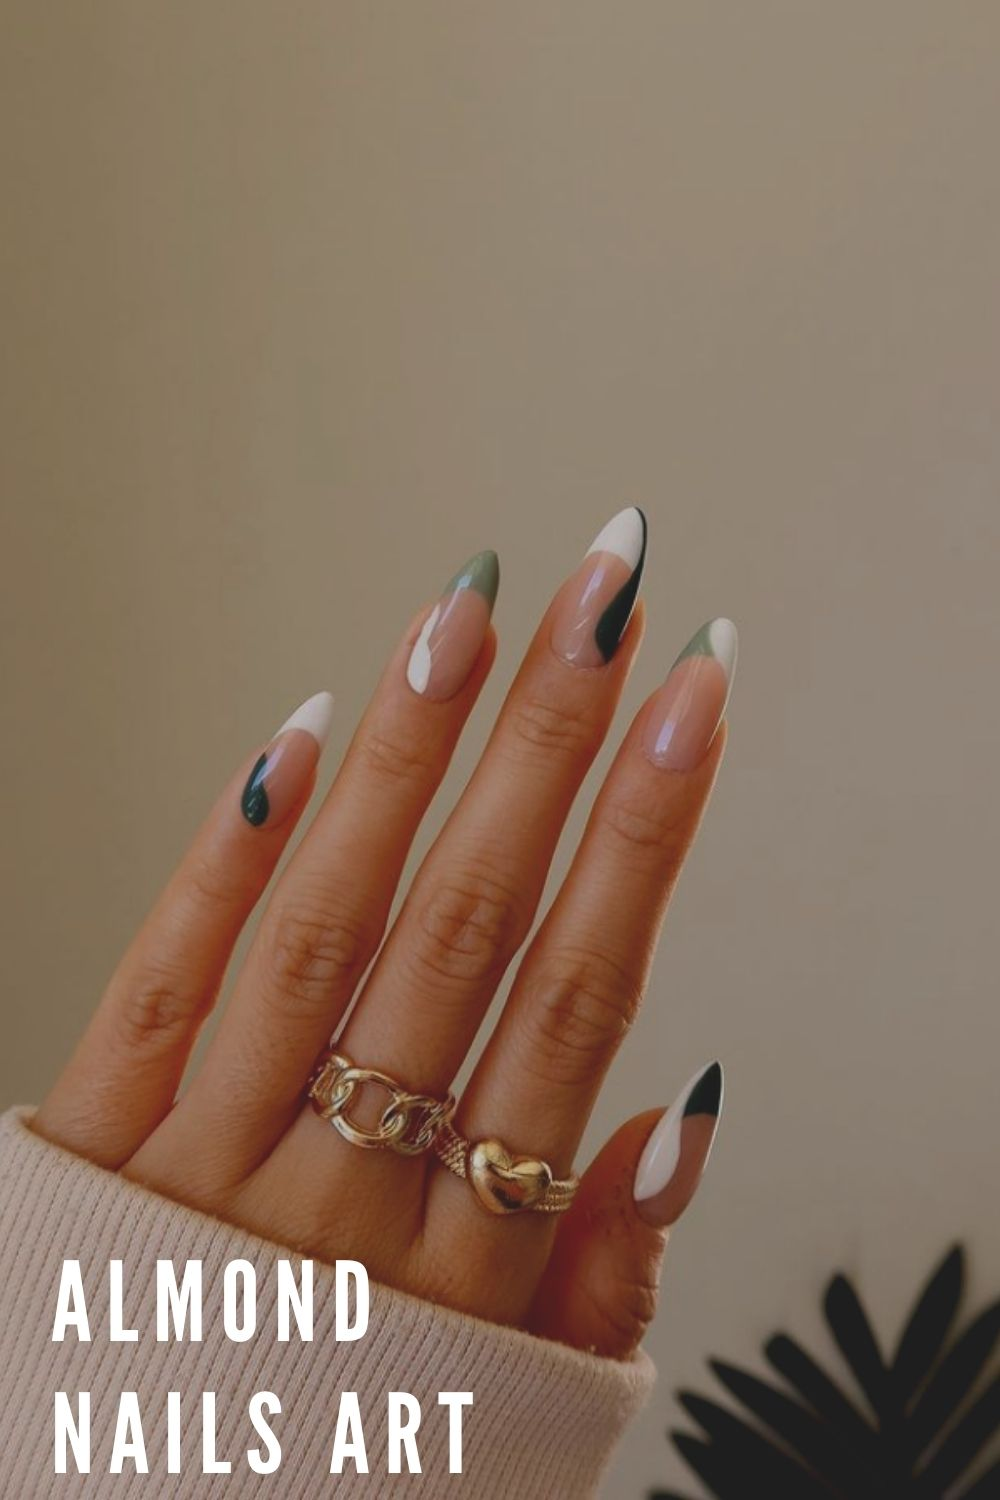 White tip French nails